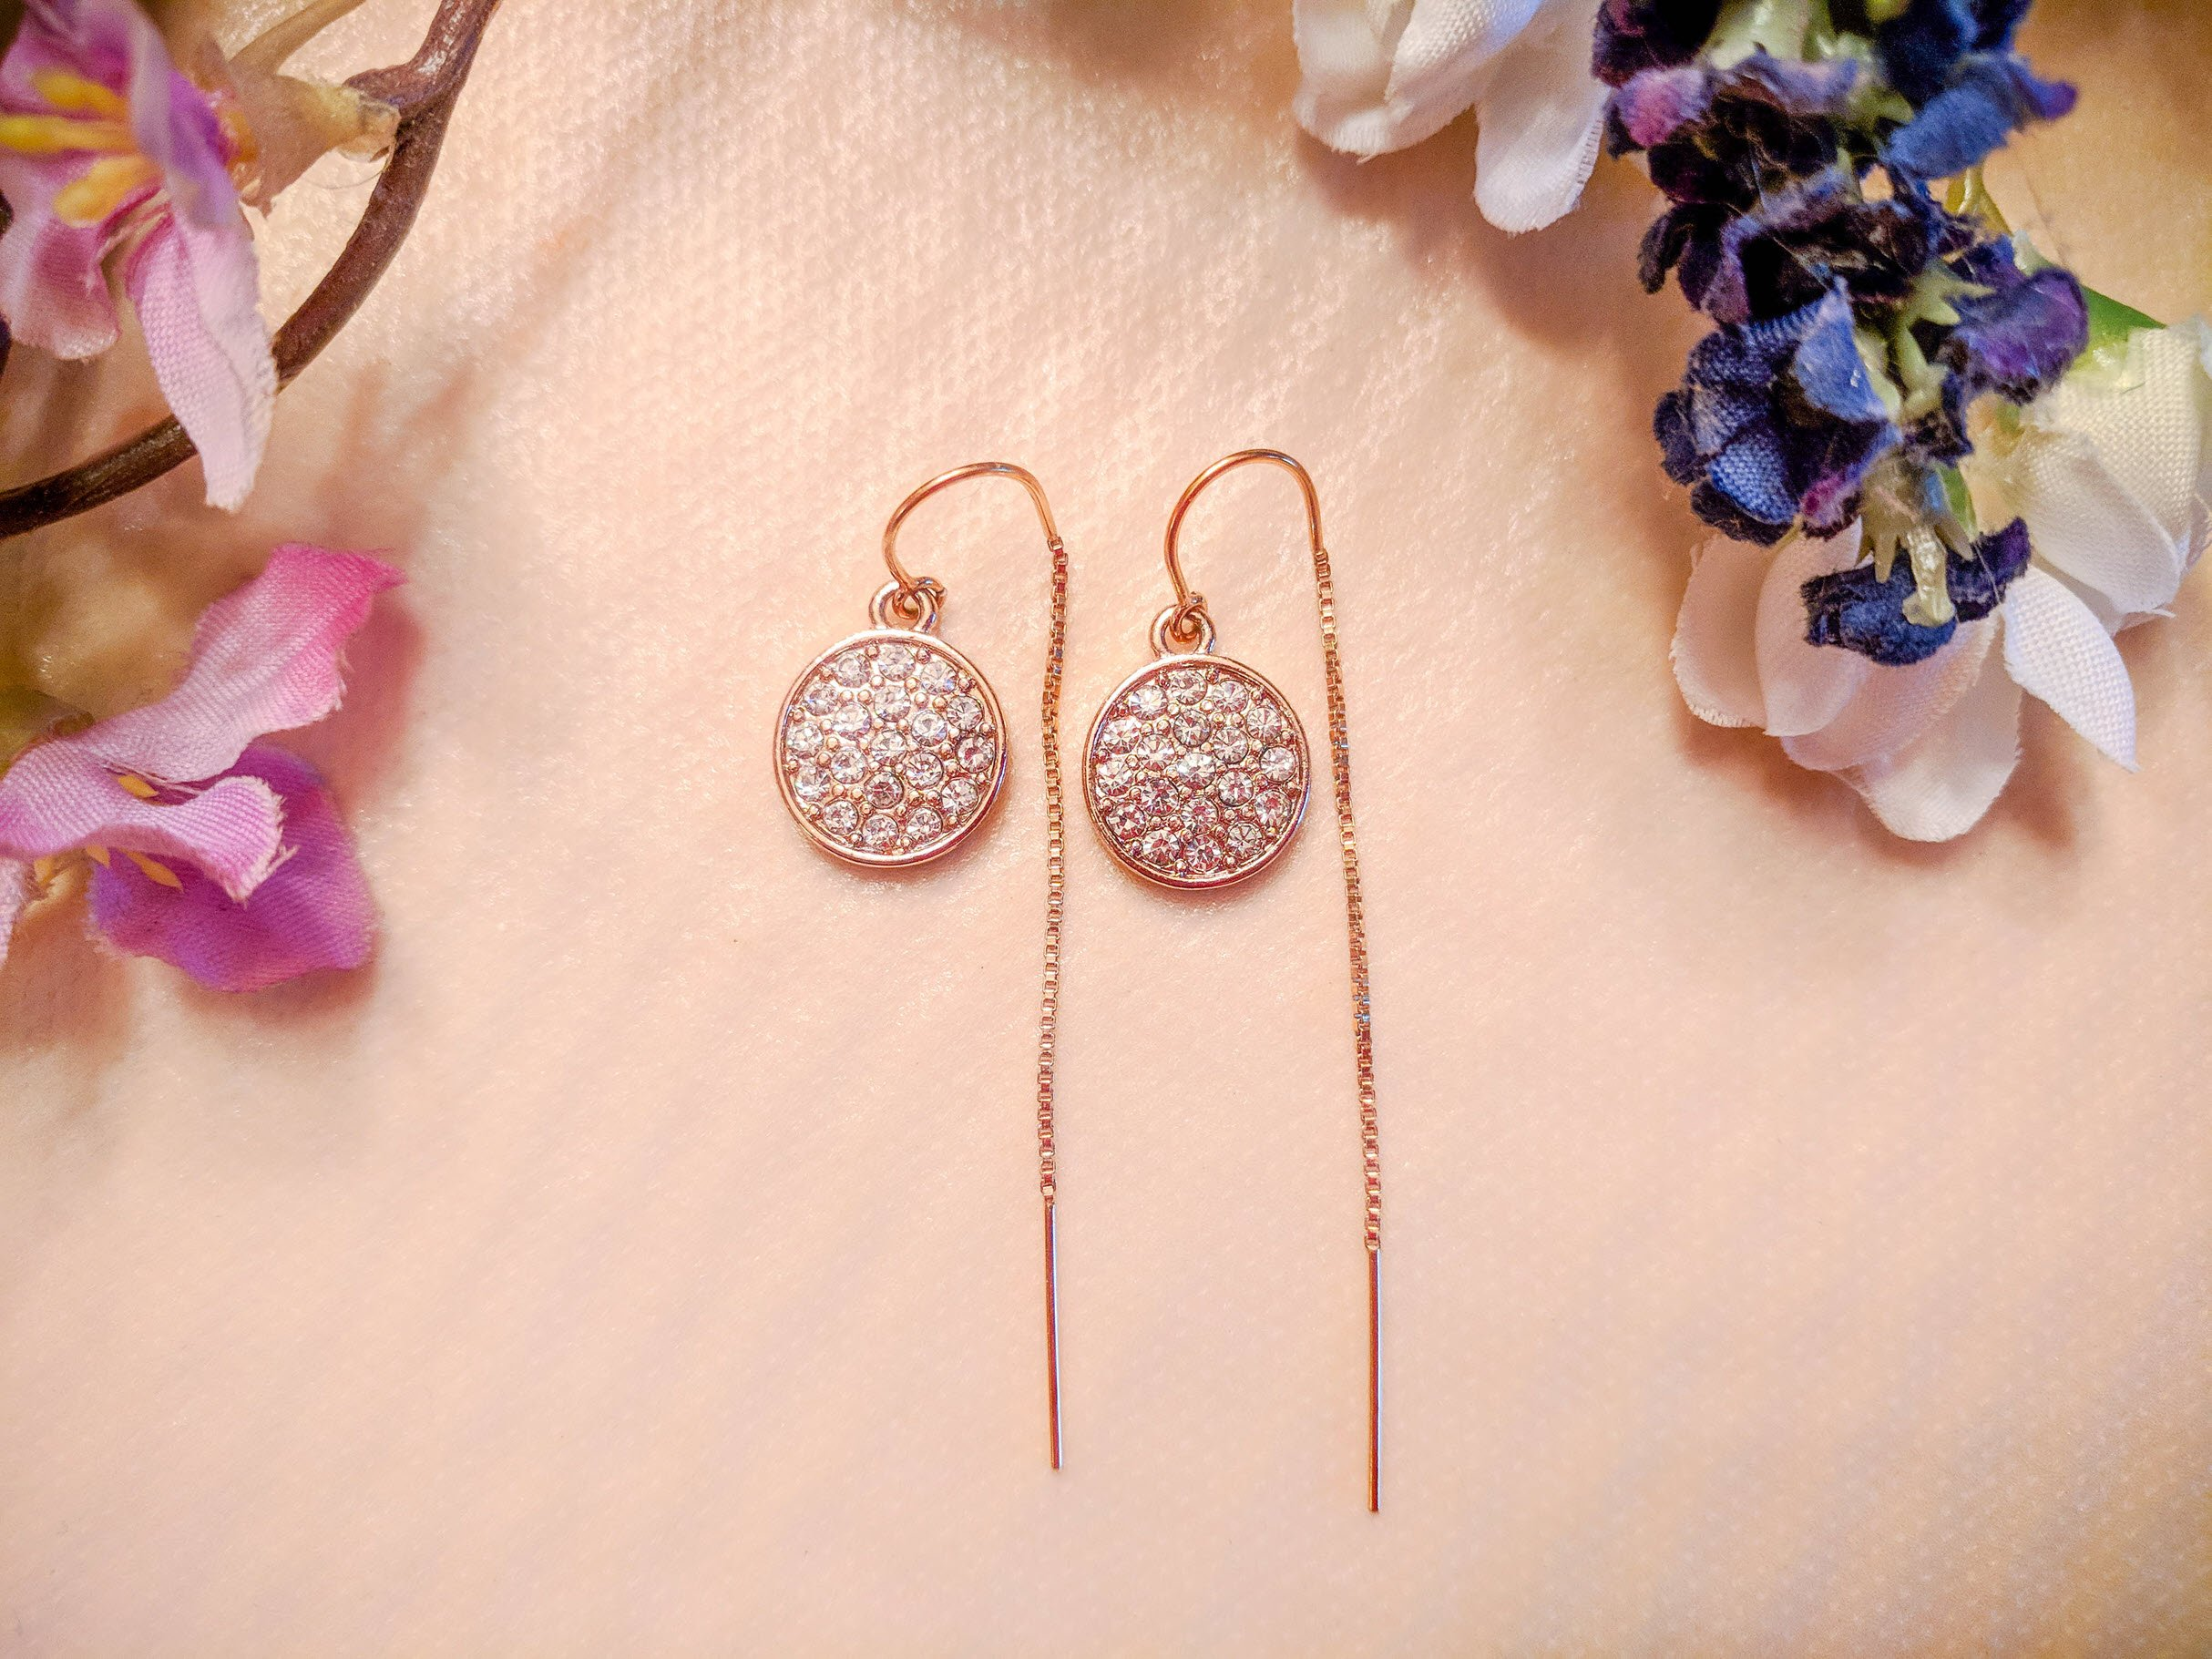 My Latest Earring Obsession – Threader Earrings By Cecelia Designs